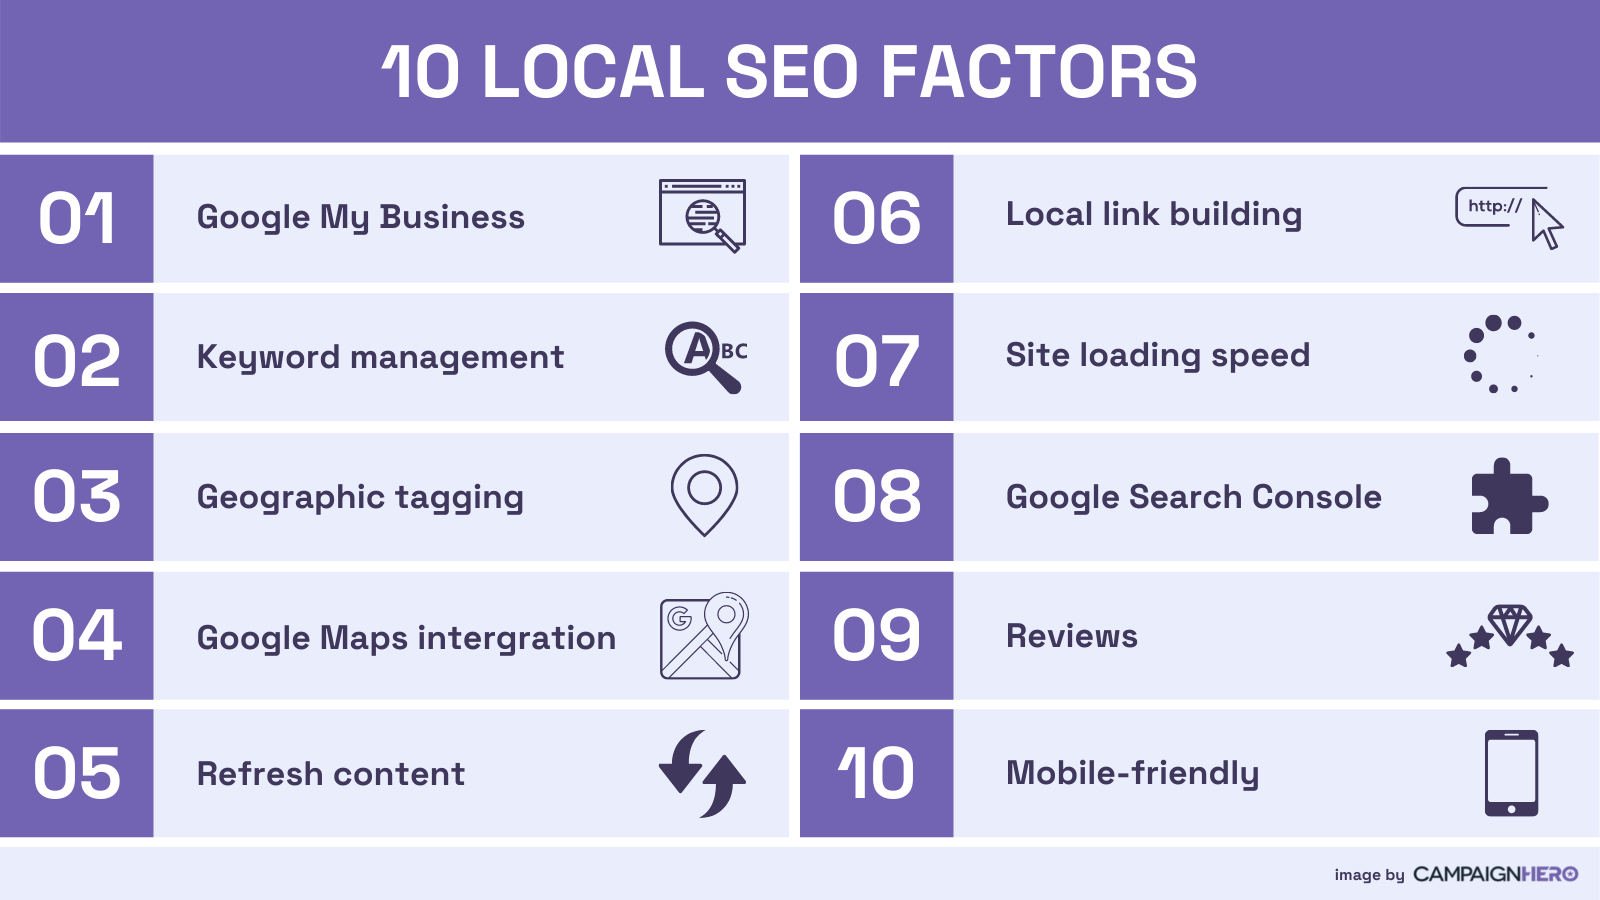 10 Local SEO Factors For Small Business From CampaignHero